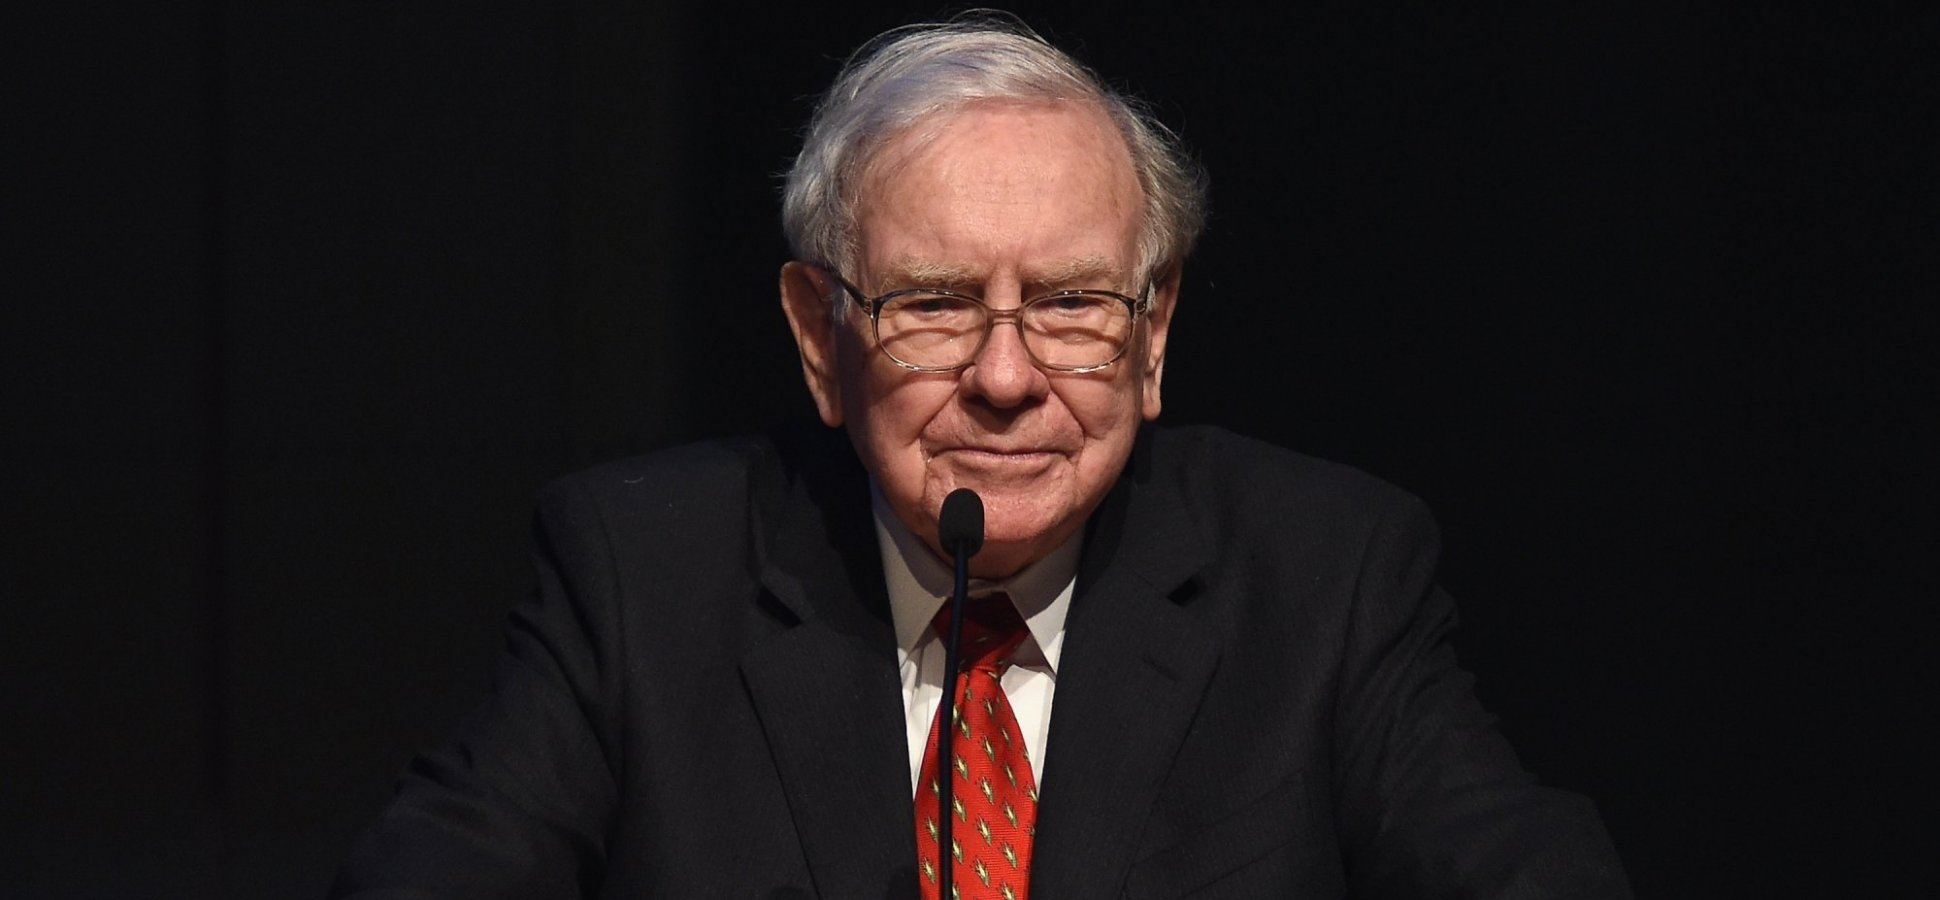 Warren Buffett Says the Ultimate Test of How You've Lived Your Life Boils Down to 1 Powerful Word